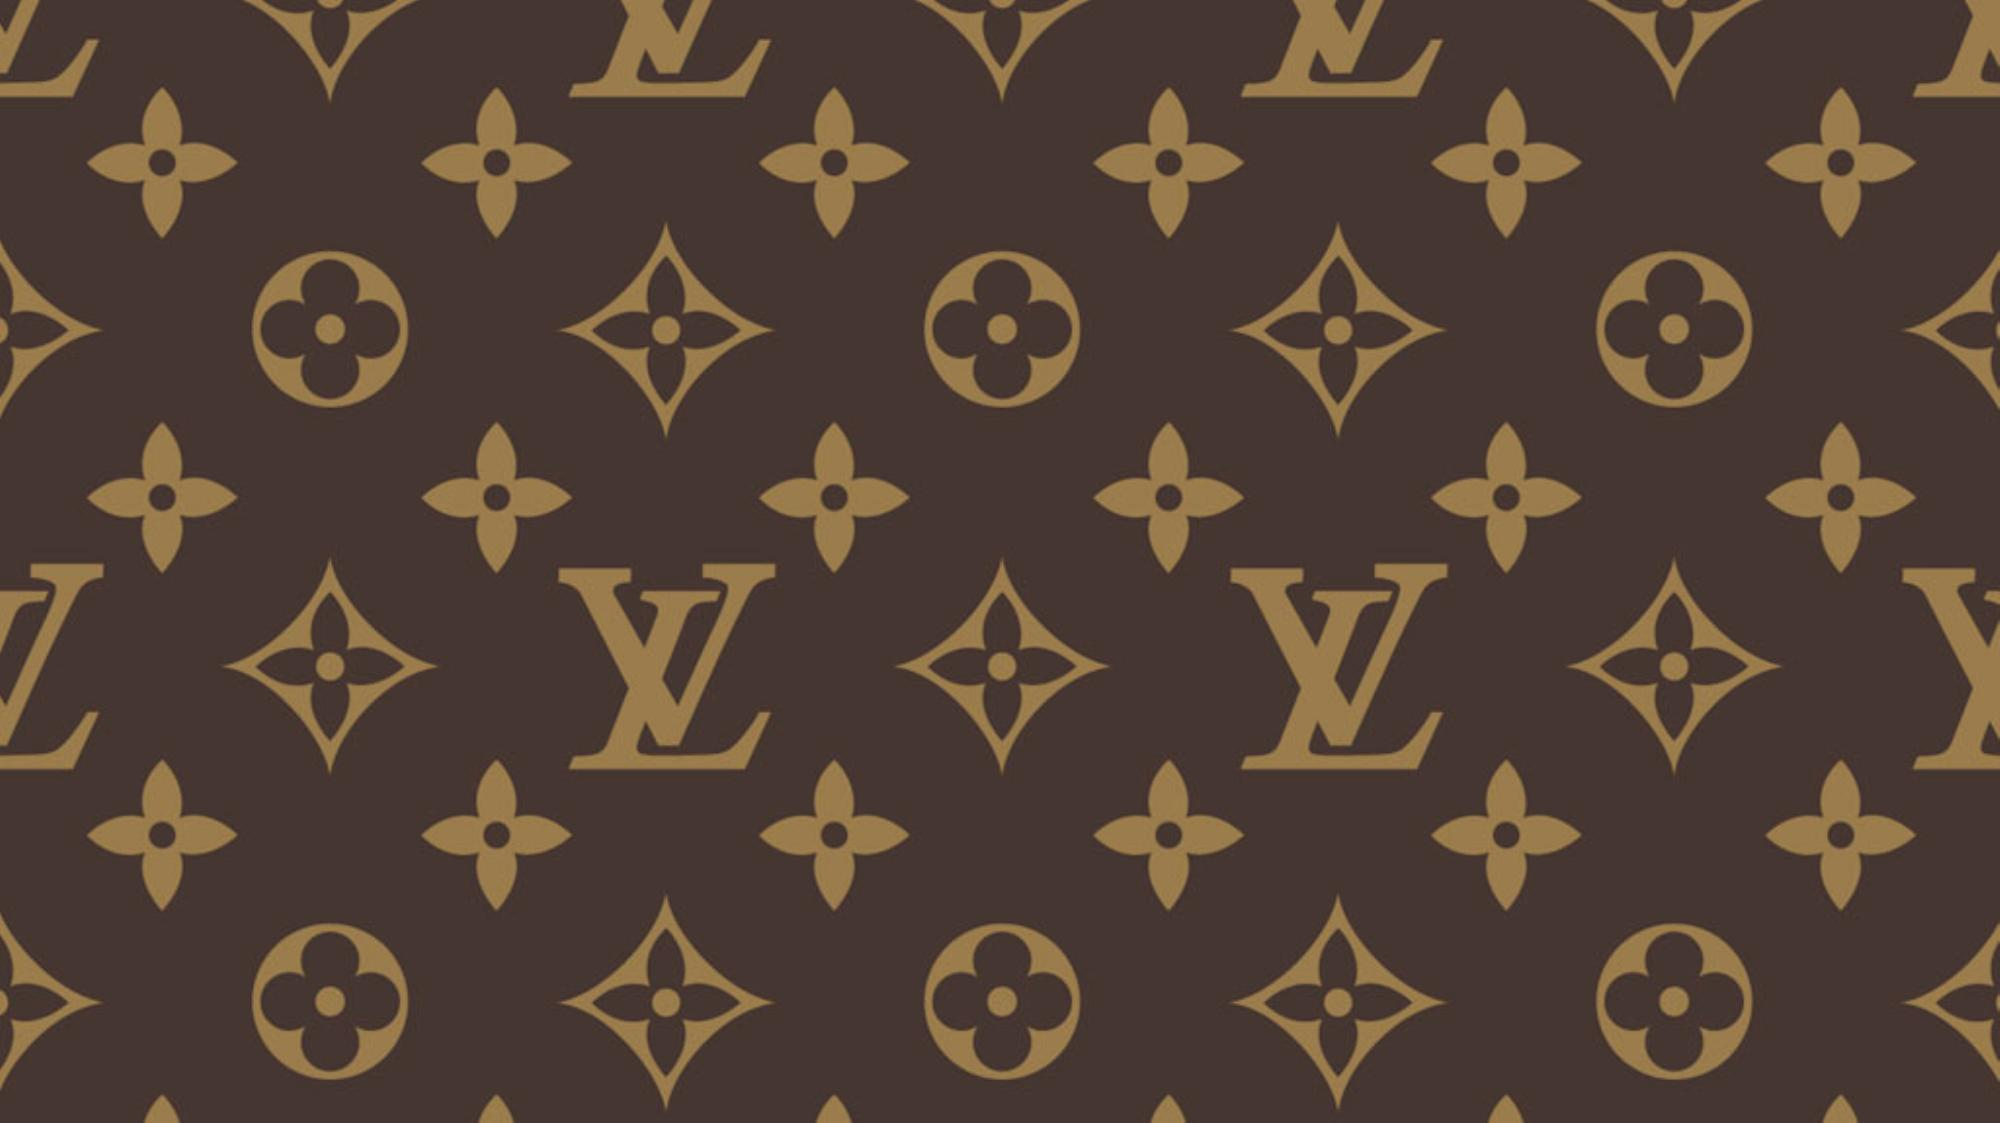 louis vuitton The best collection of authentic vintage & pre owned louis vuitton monogram handbags & purses, at discounted prices guaranteed authentic free shipping .